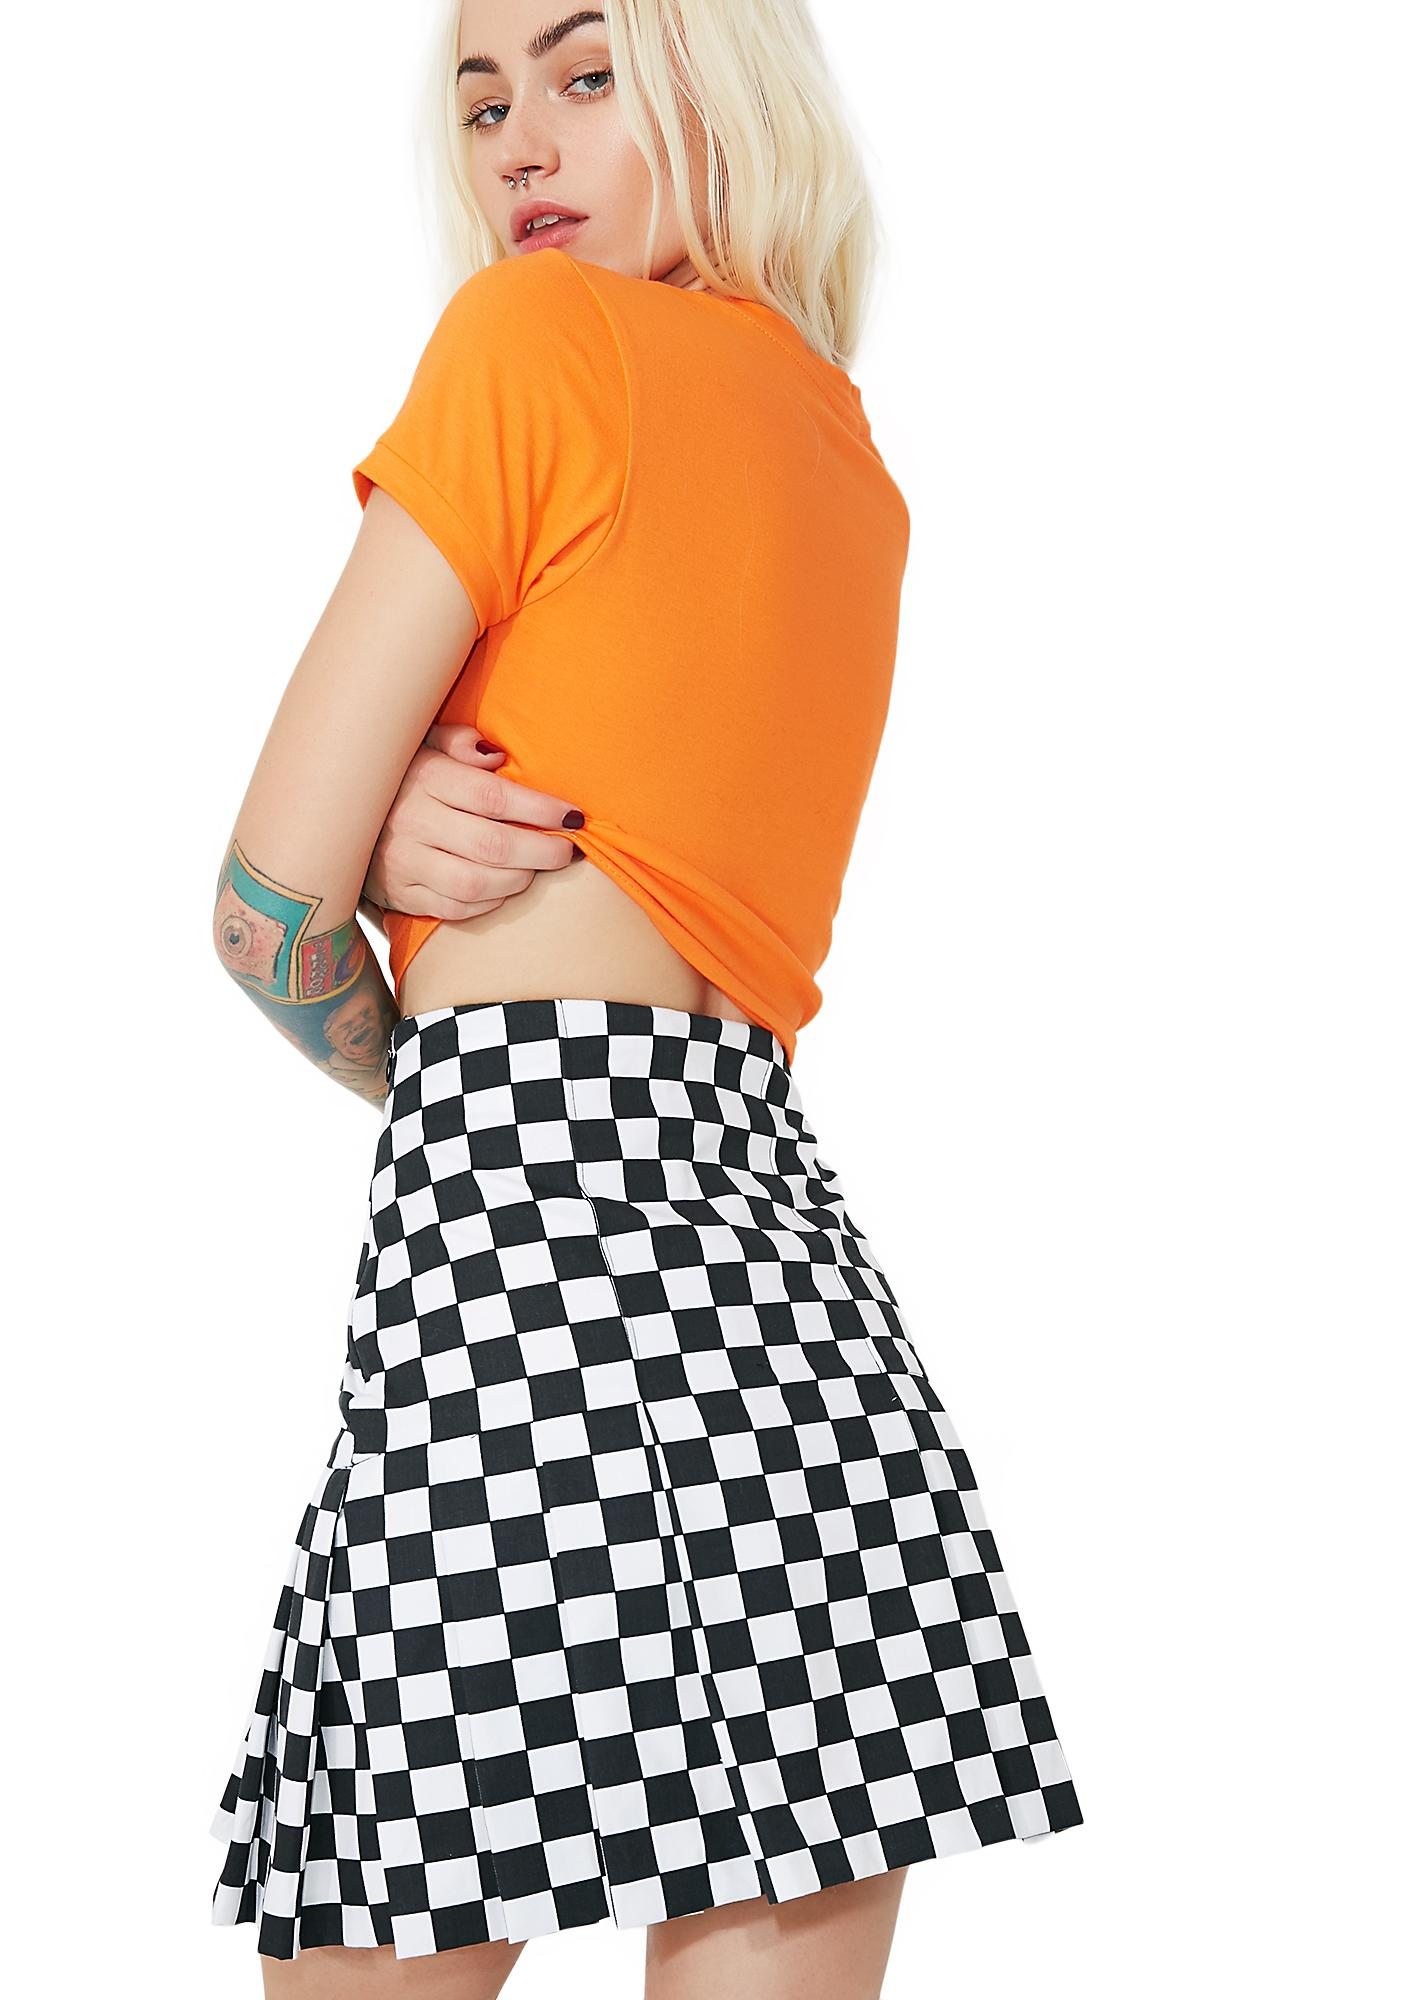 The Ragged Priest Pitch Skirt